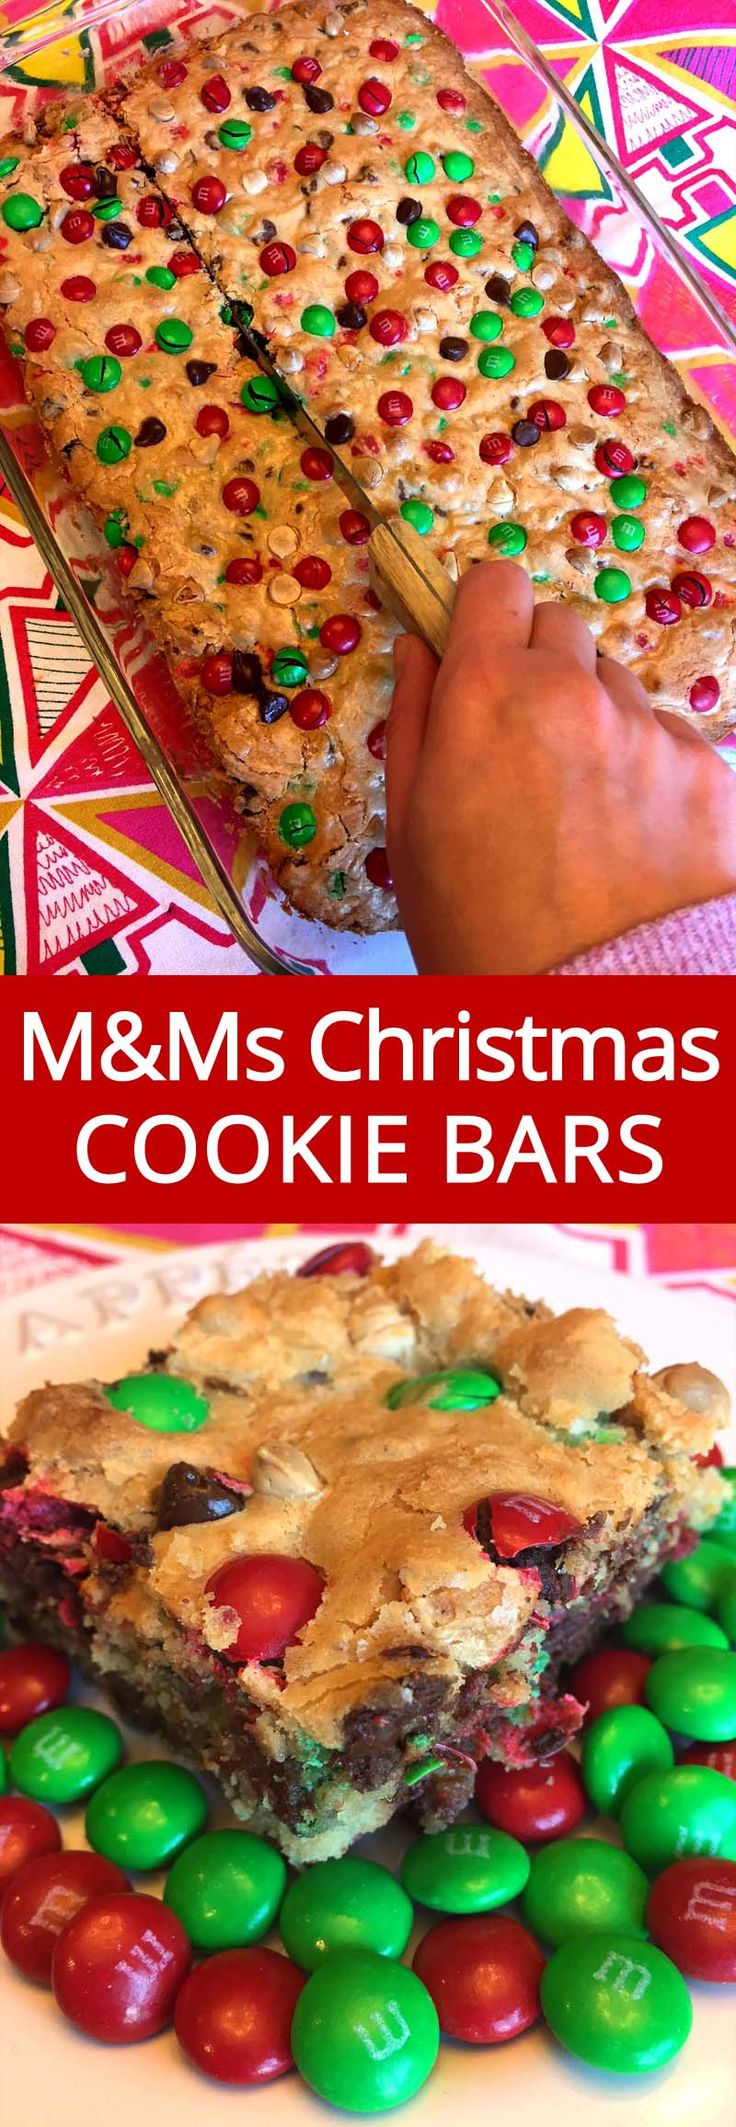 These Christmas M&M's cookie bars are amazing! So bright and festive and taste mouthwatering! Super easy to make, everyone will beg you for these M&Ms cookie bars, you'll be making a batch after batch after batch!